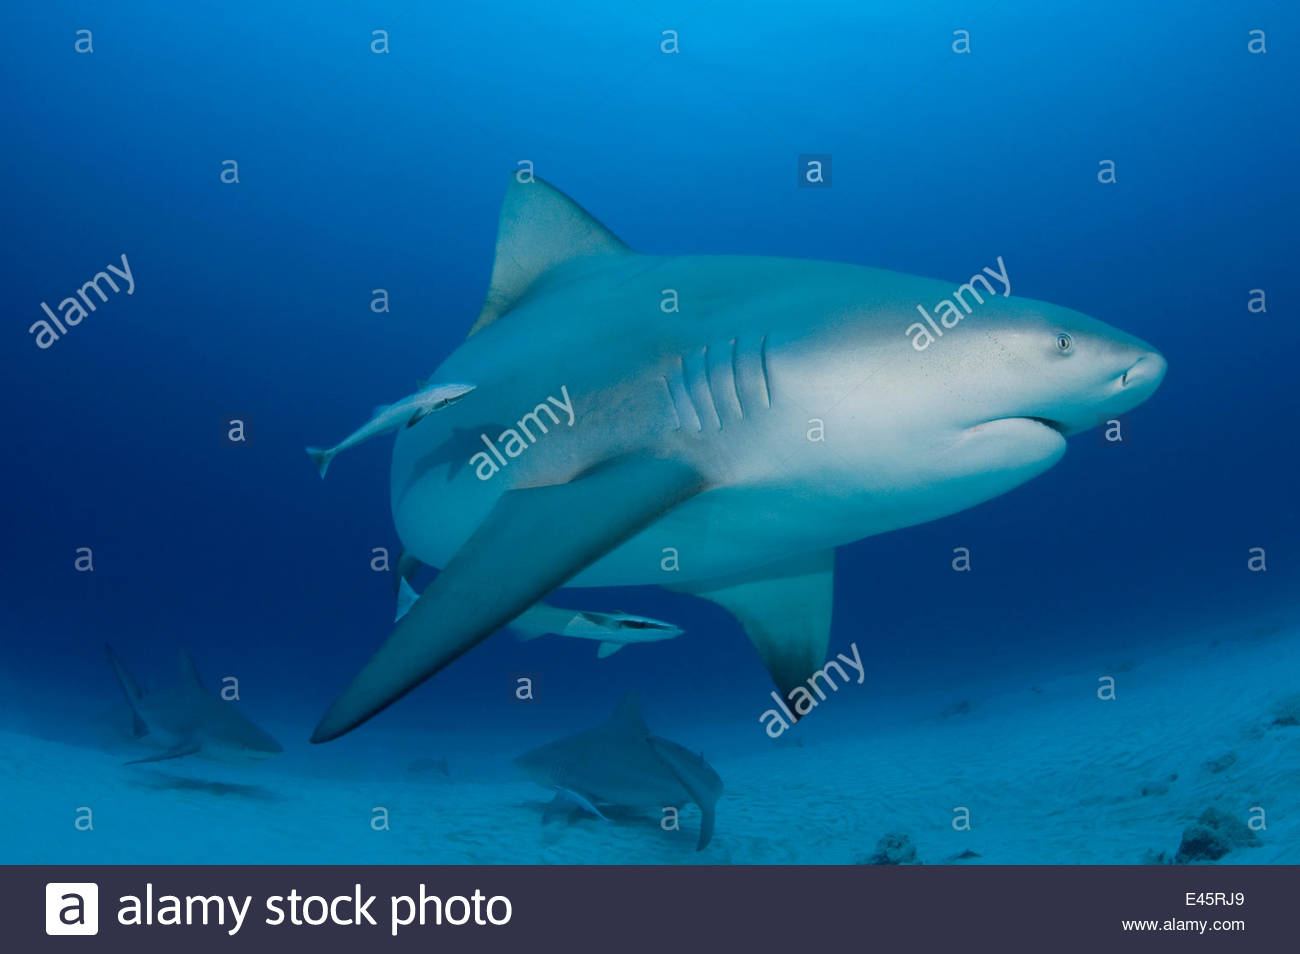 Female Bull sharks (Carcharhinus leucas) in seasonal breeding aggregation with Sharksuckers (Echeneis naucrates) - Stock Image